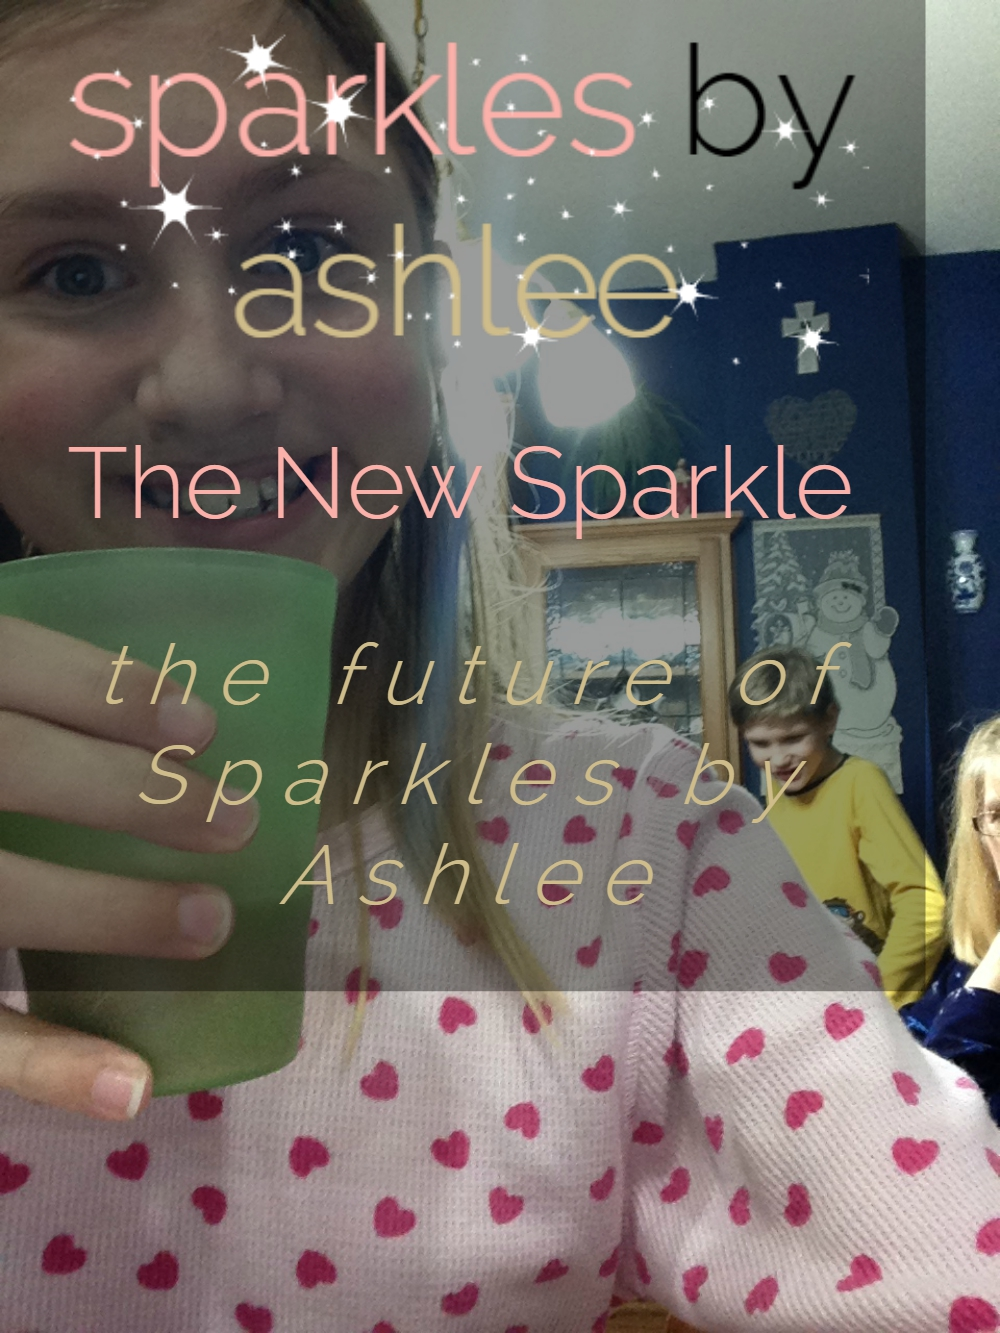 The-New-Sparkle-Sparkles-by-Ashlee.jpg